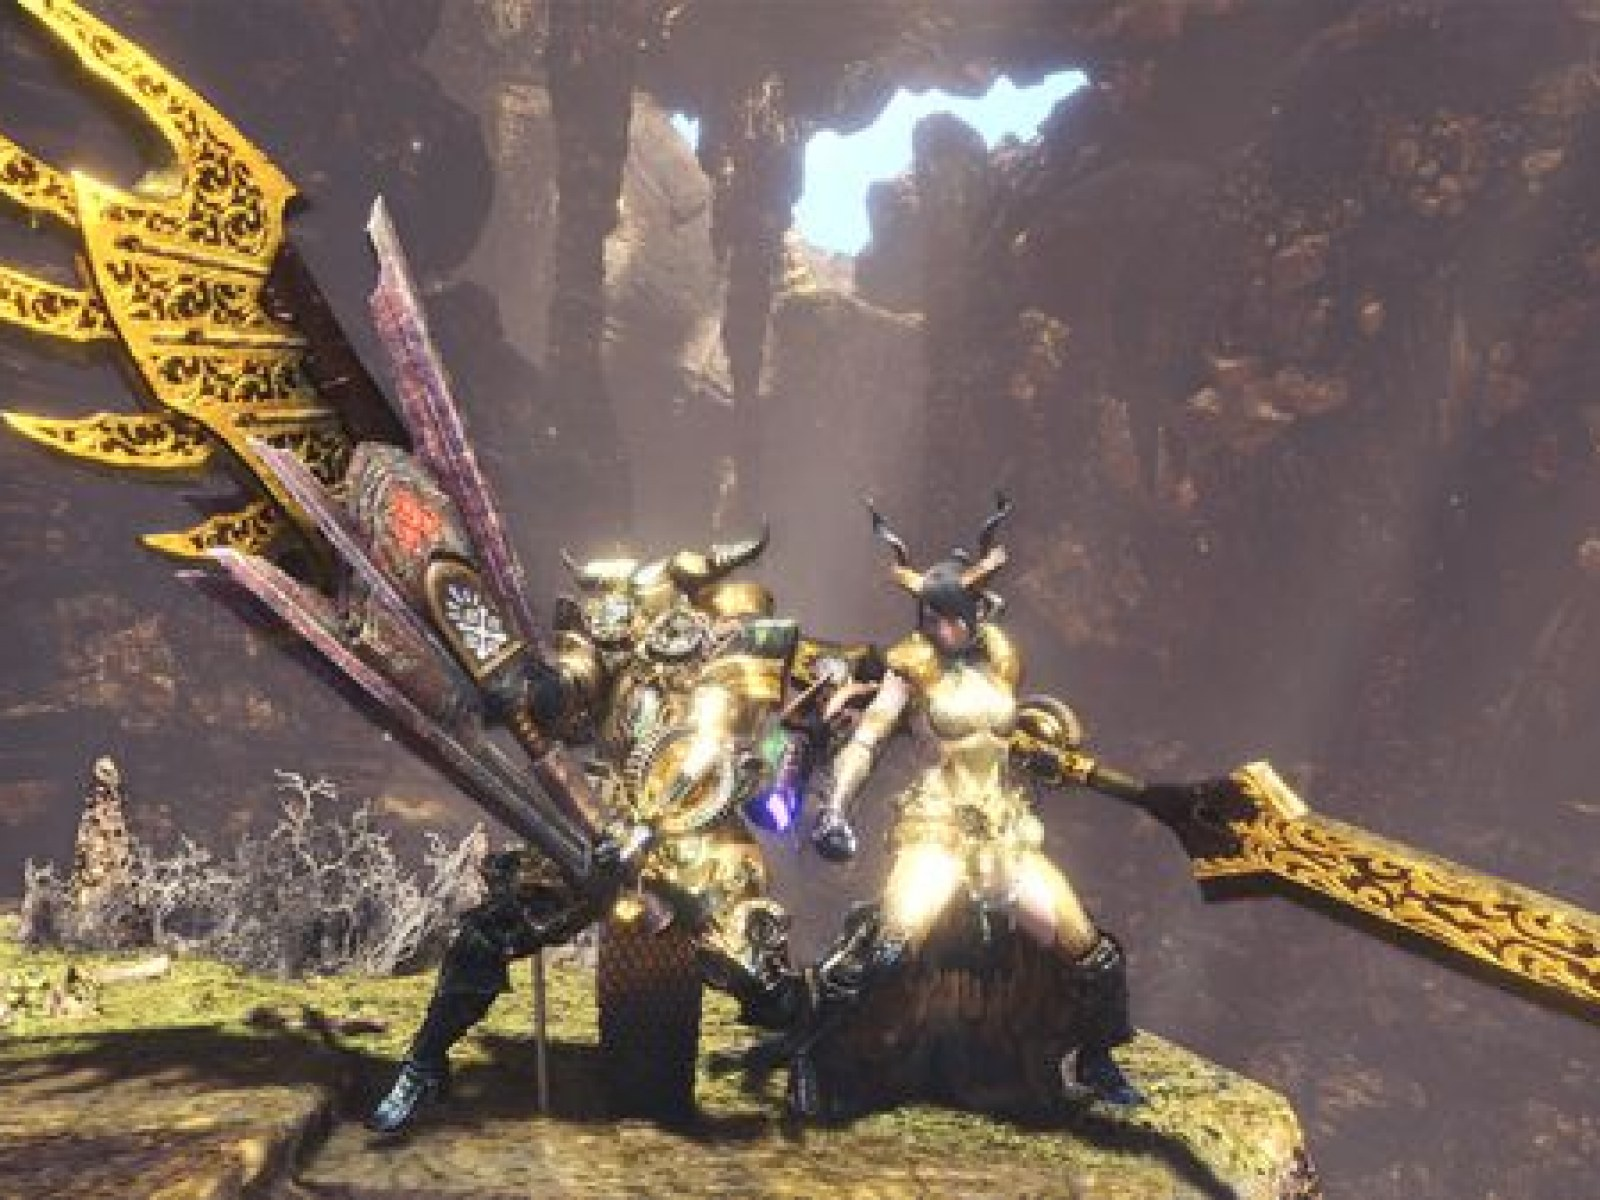 Monster Hunter World' Kulve Taroth Siege Guide: How to Start